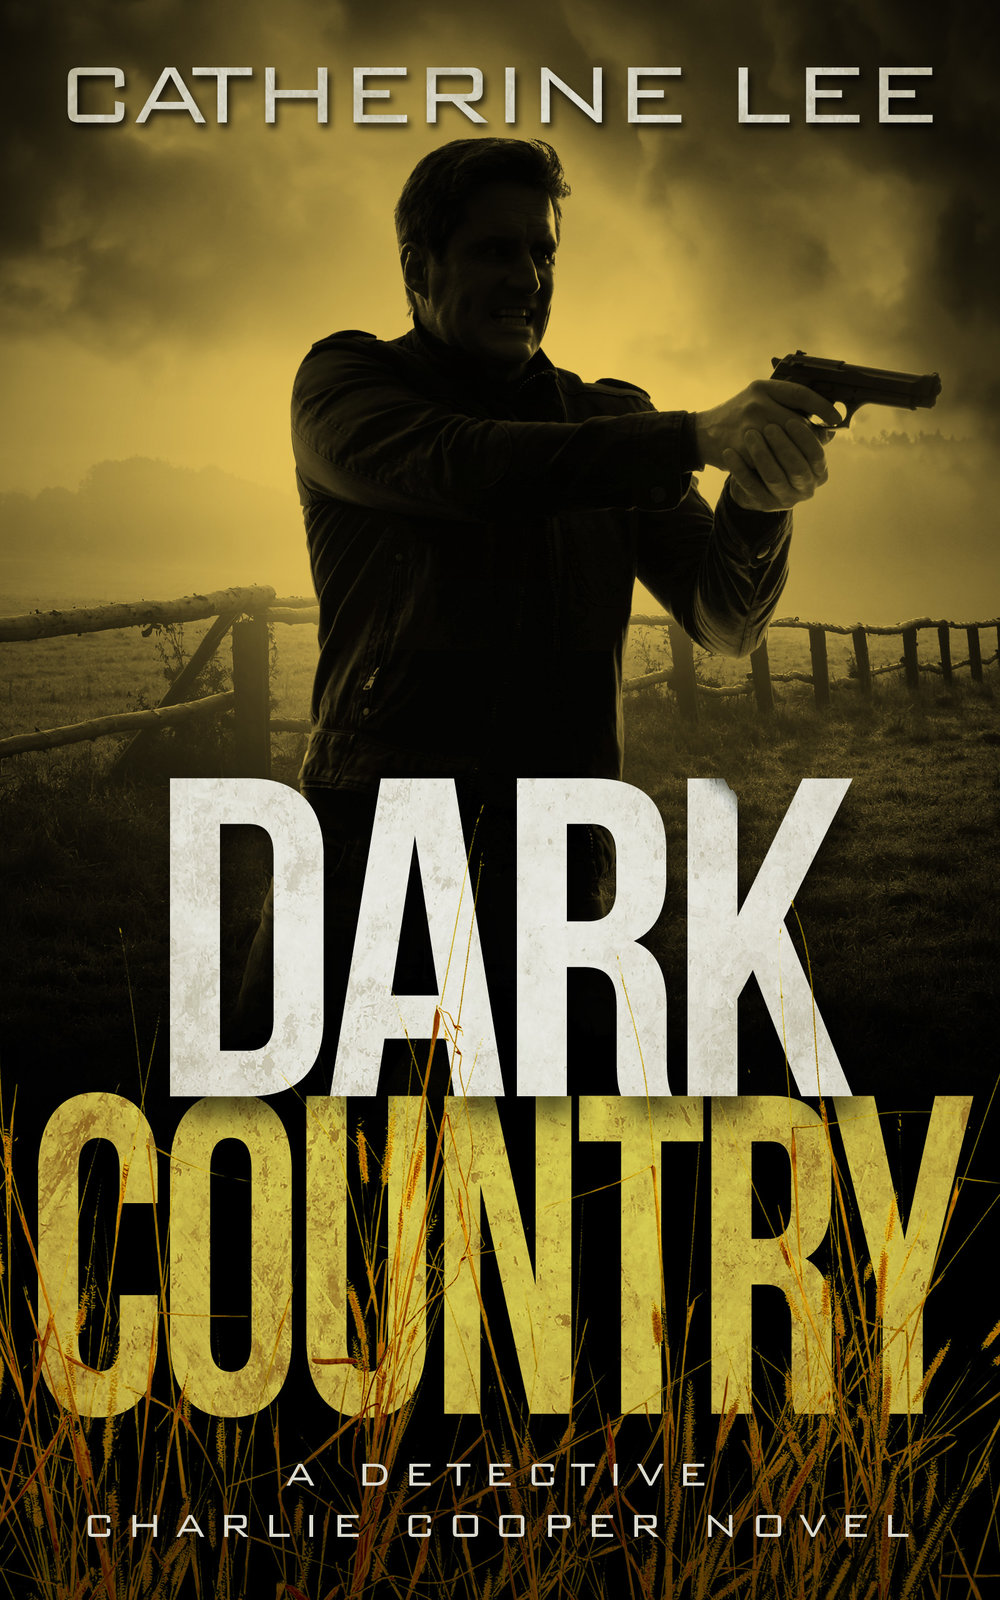 Dark Country Book VI 003.jpg